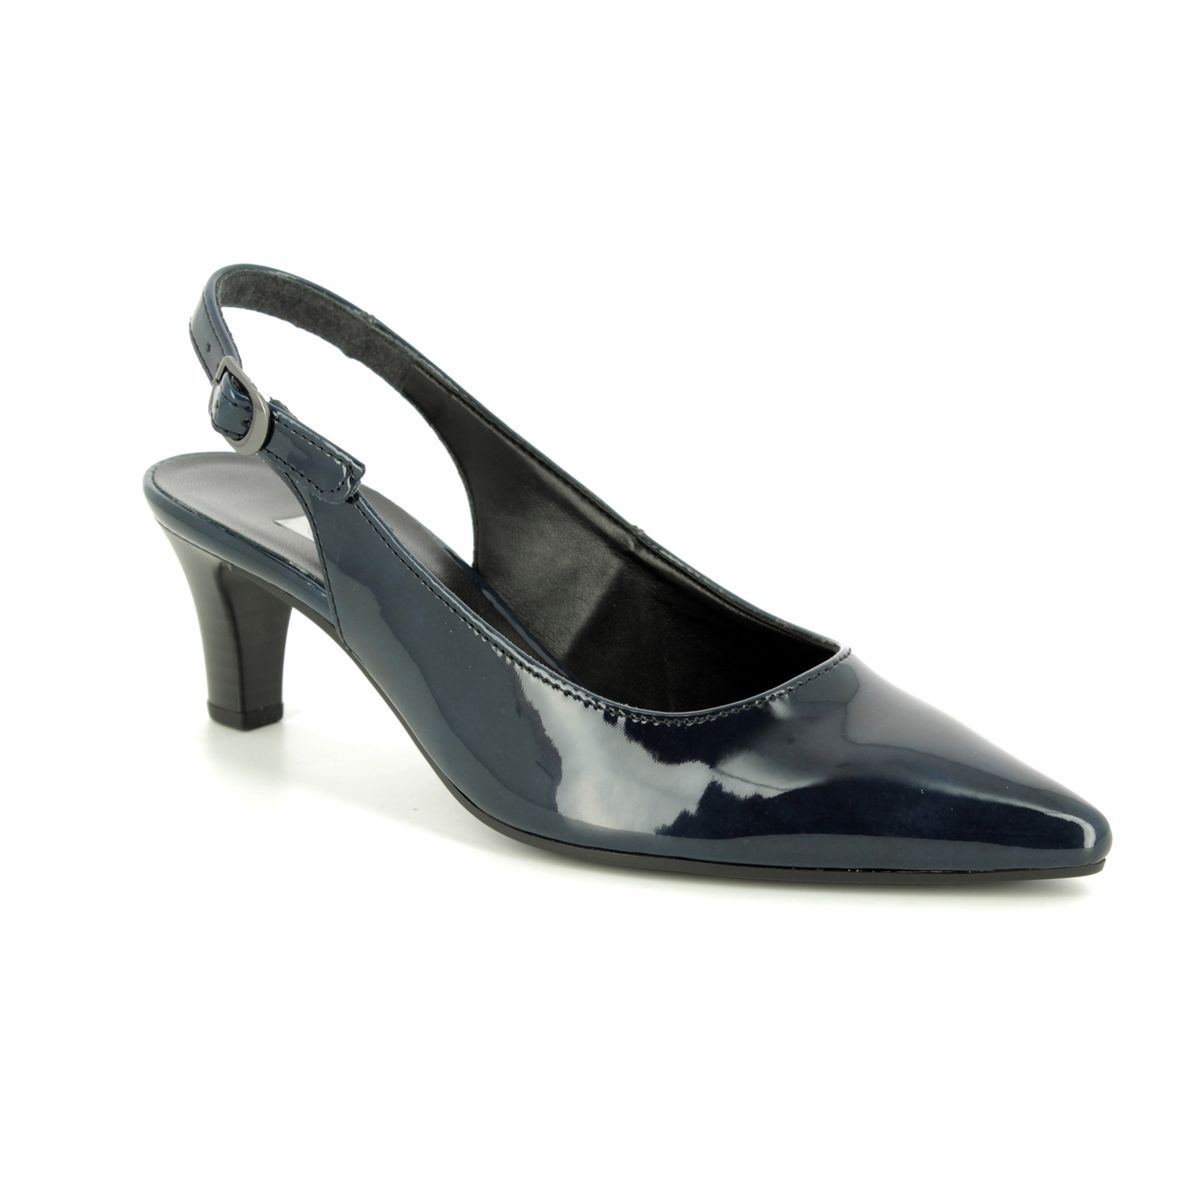 a63b55d07bb Gabor Slingback Shoes - Navy patent - 21.550.76 HUME 2